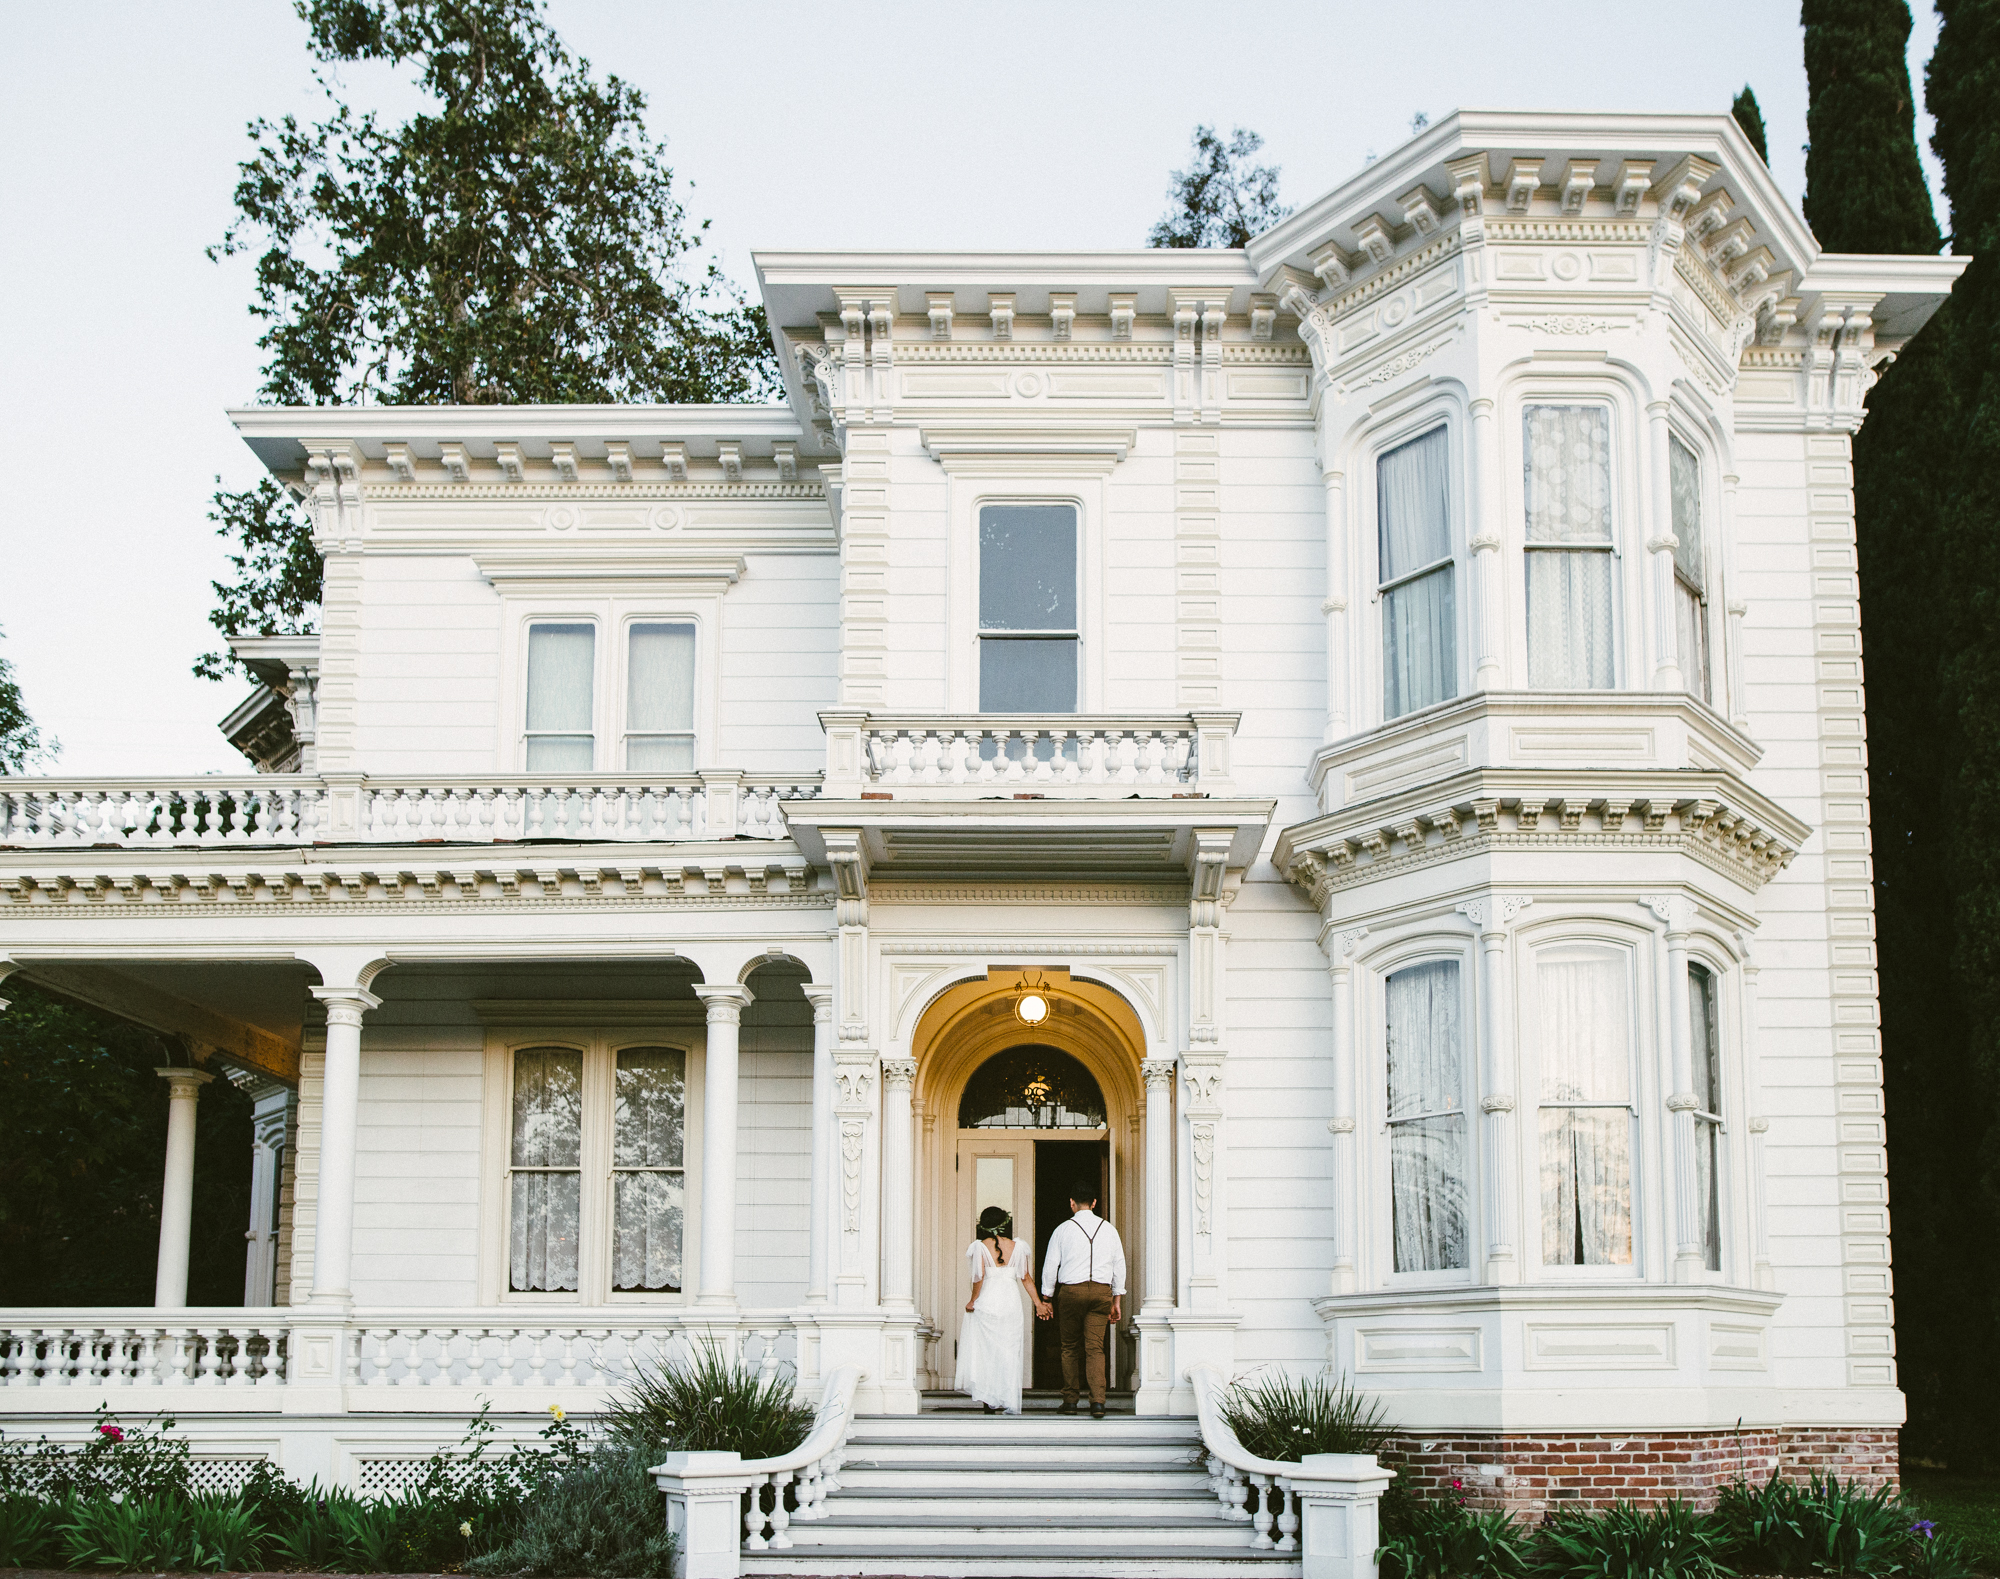 Isaiah & Taylor Photography - Los Angeles - Destination Wedding Photographers - Heritage Square Museum -77.jpg